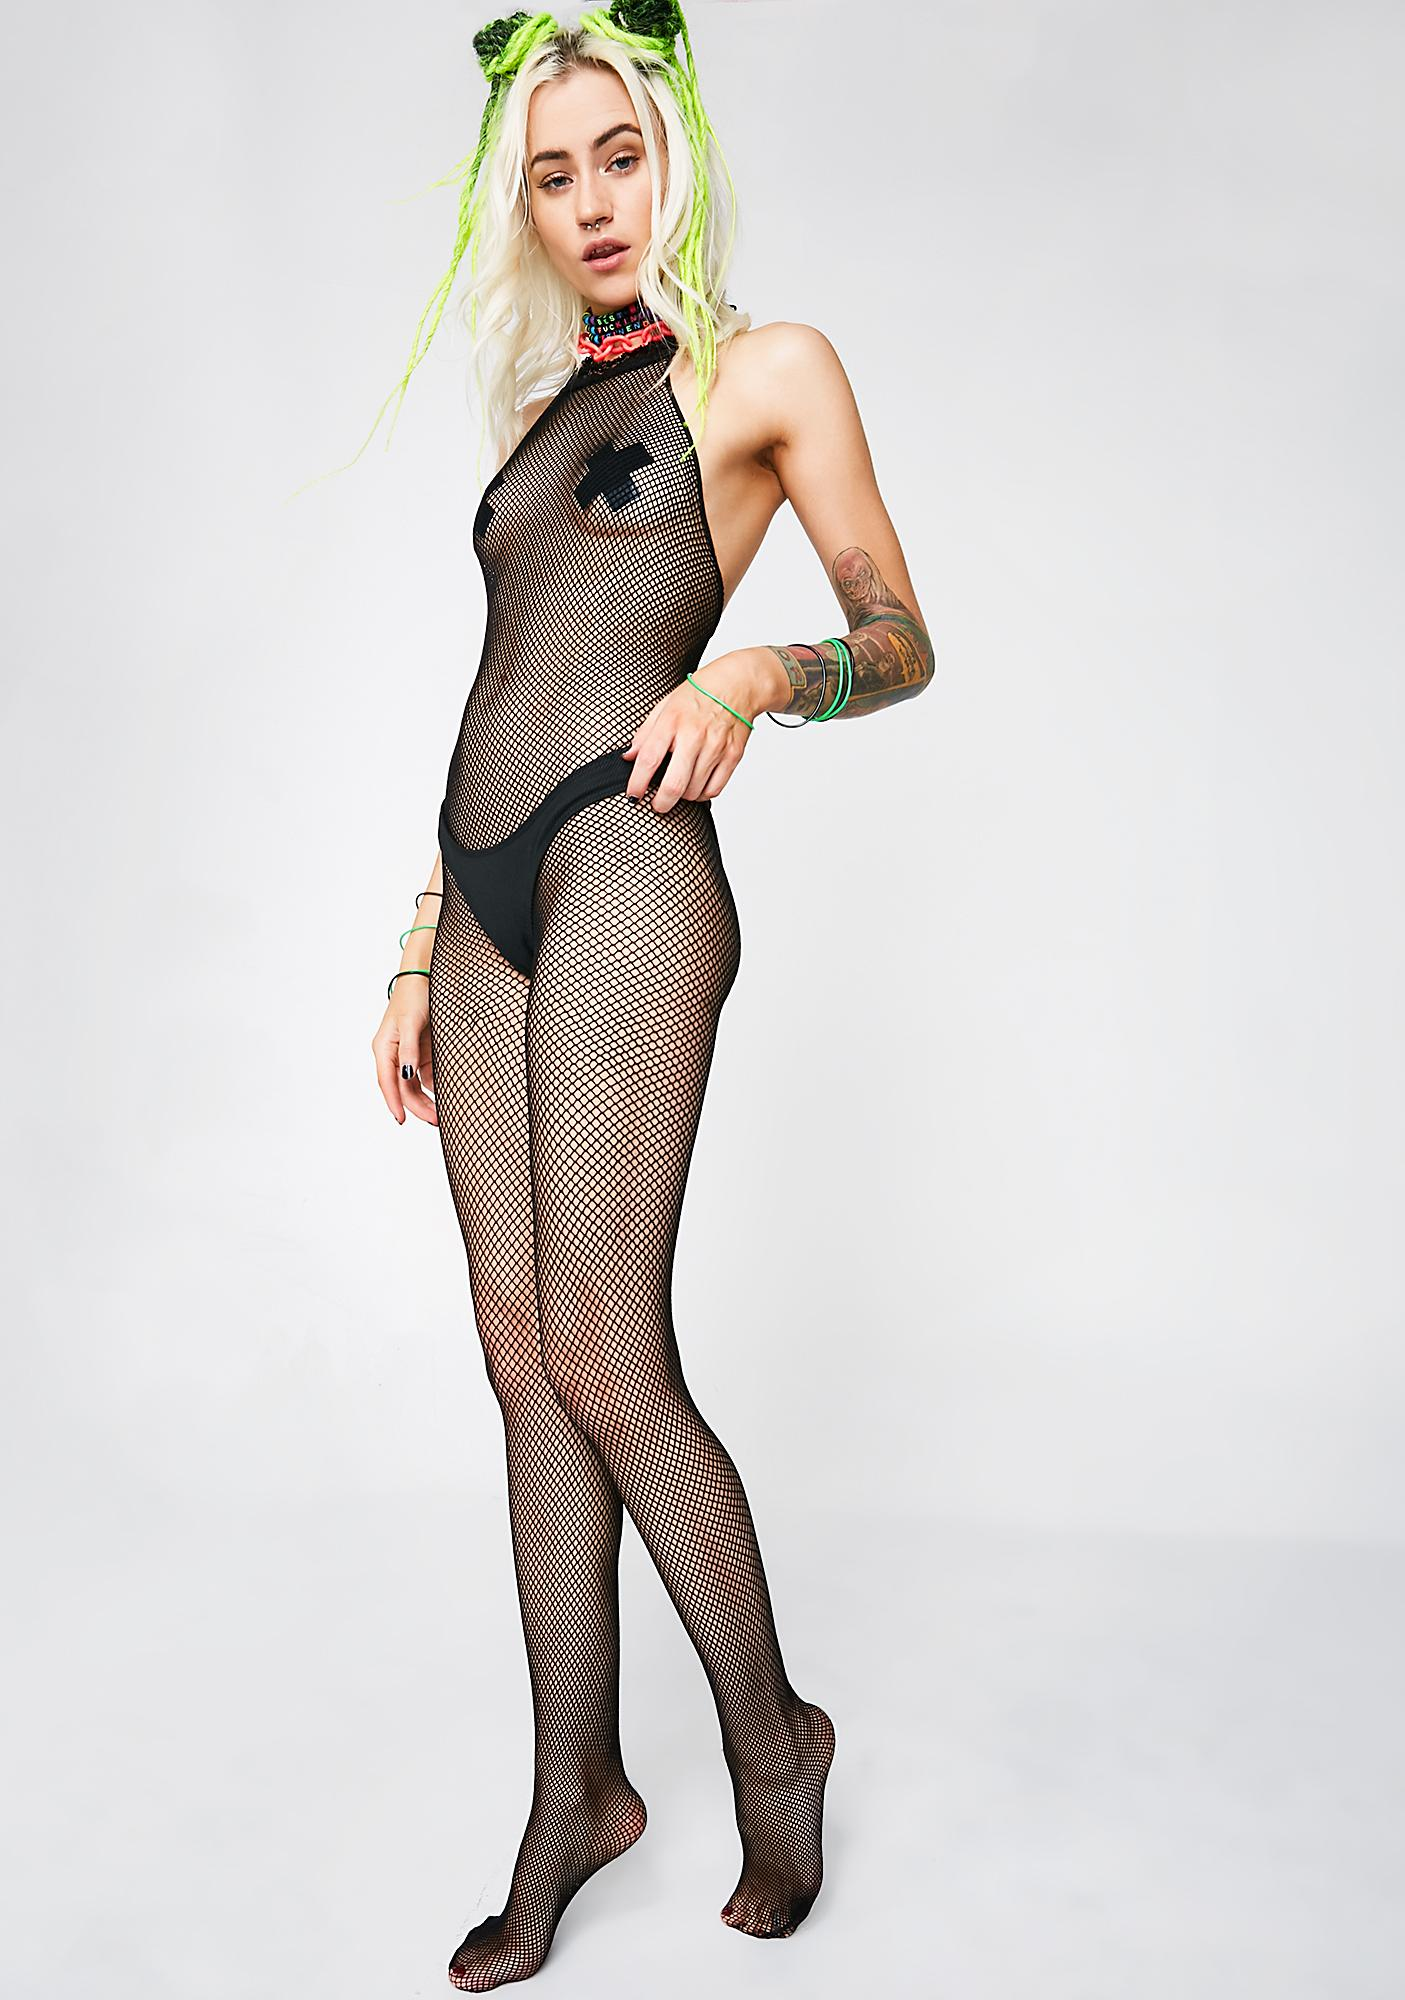 Freak Flag Fishnet Body Stocking